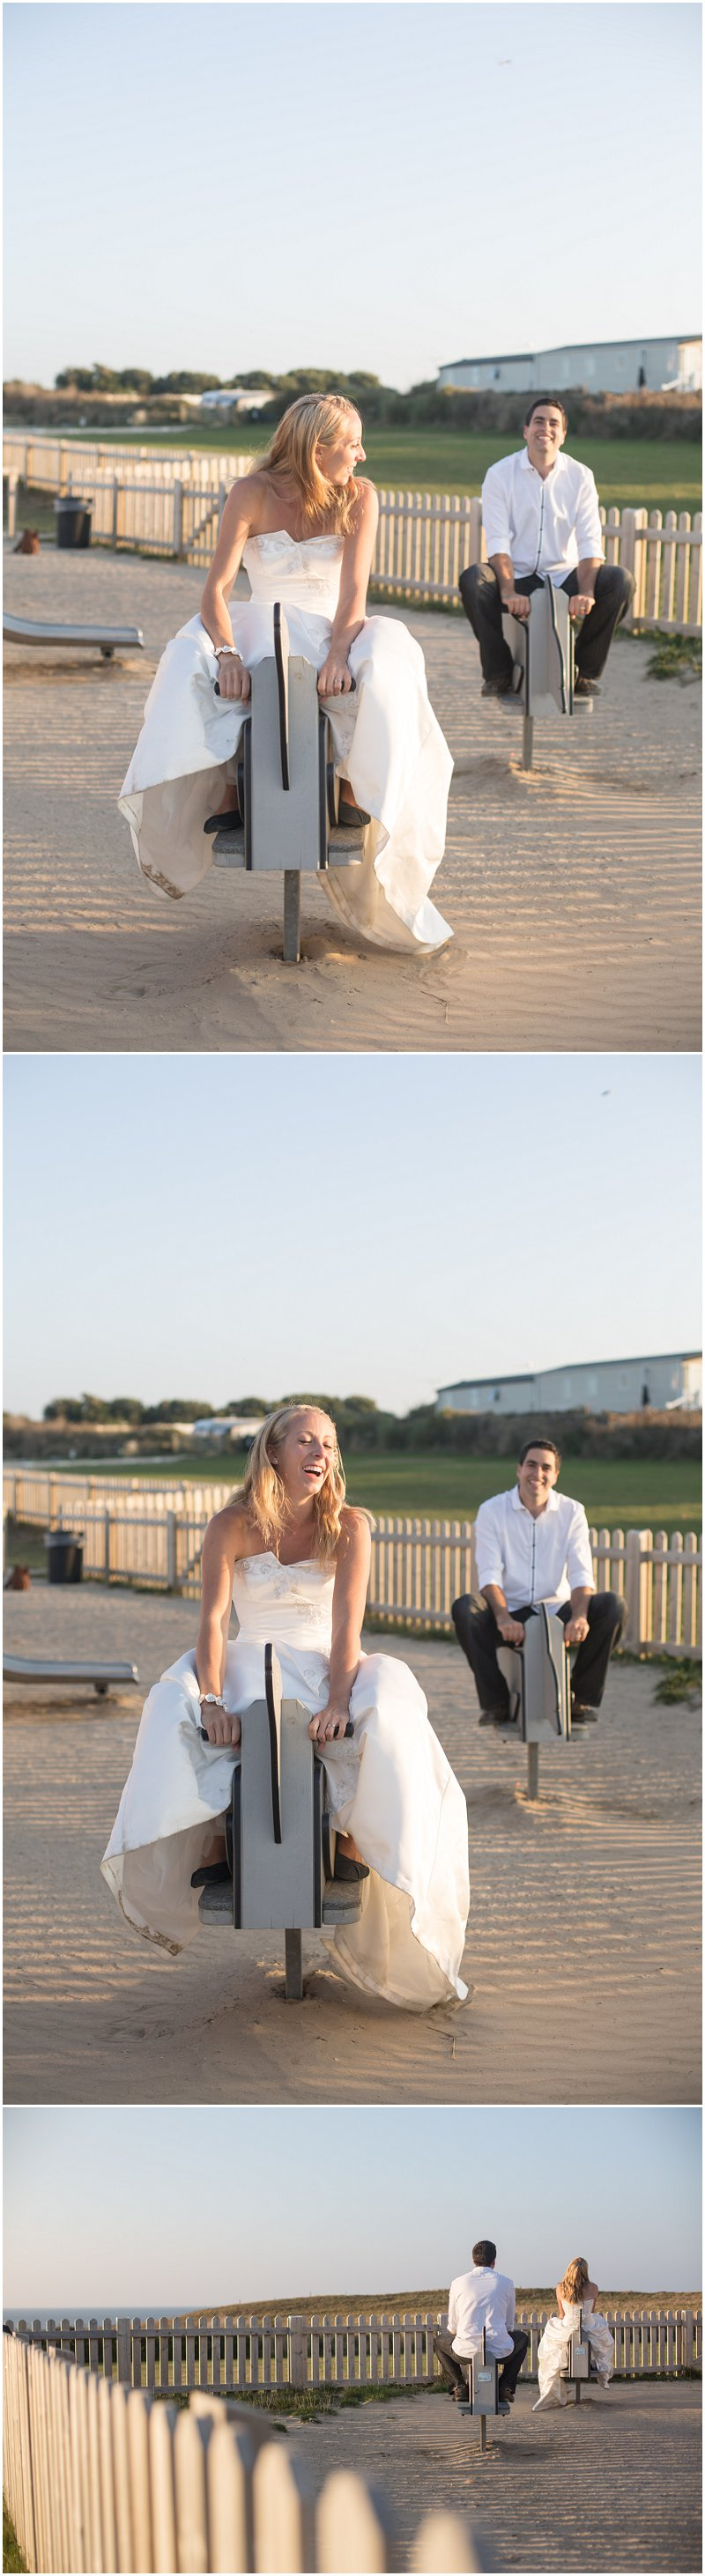 Riding the kids playground toys during wedding photography shoot